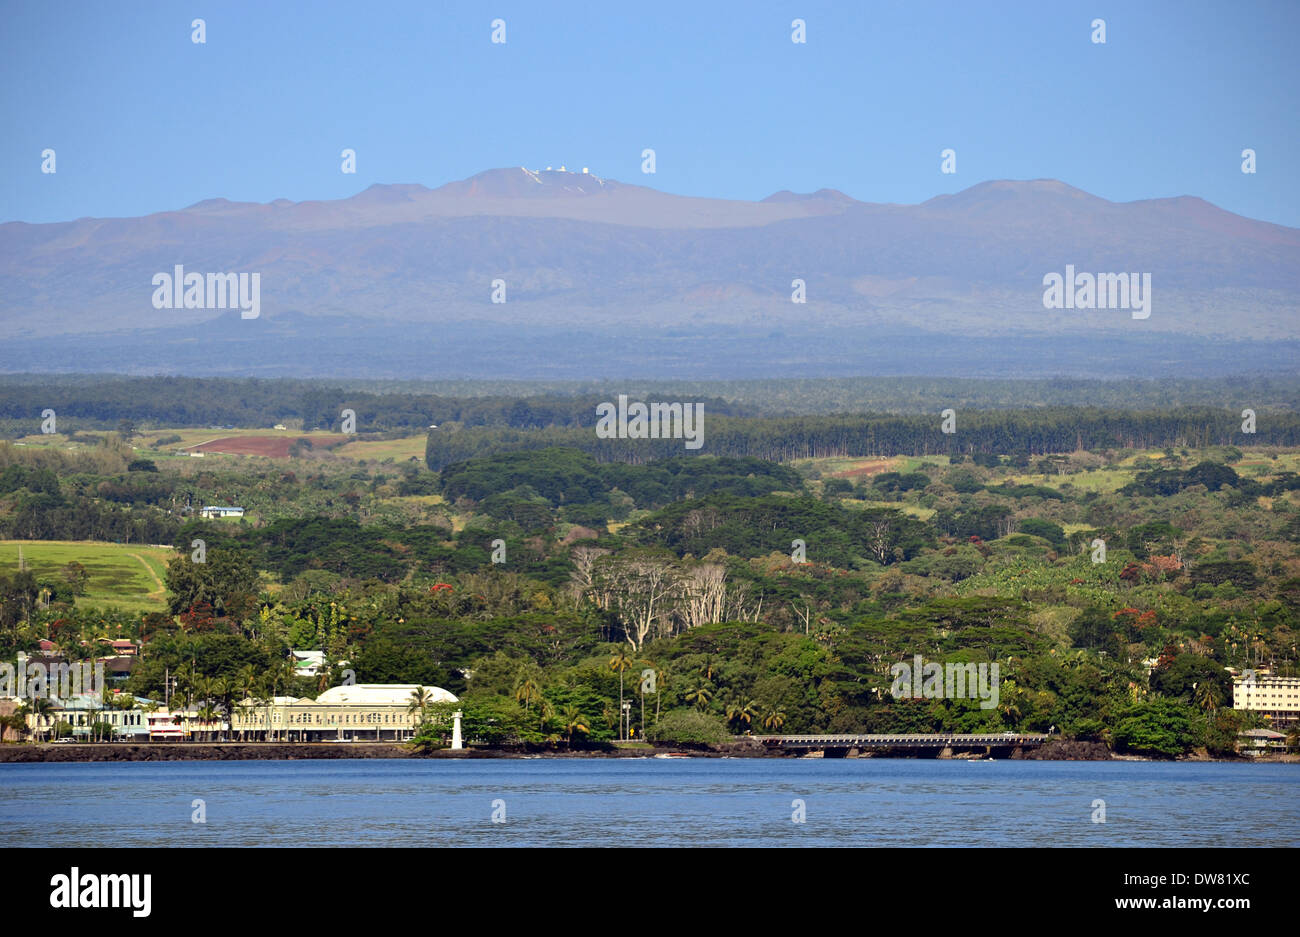 Mauna Kea, the largest and tallest mountain in the world, viewed from Hilo Bay in a clear day, Hilo, Big Island, Hawaii, USA - Stock Image